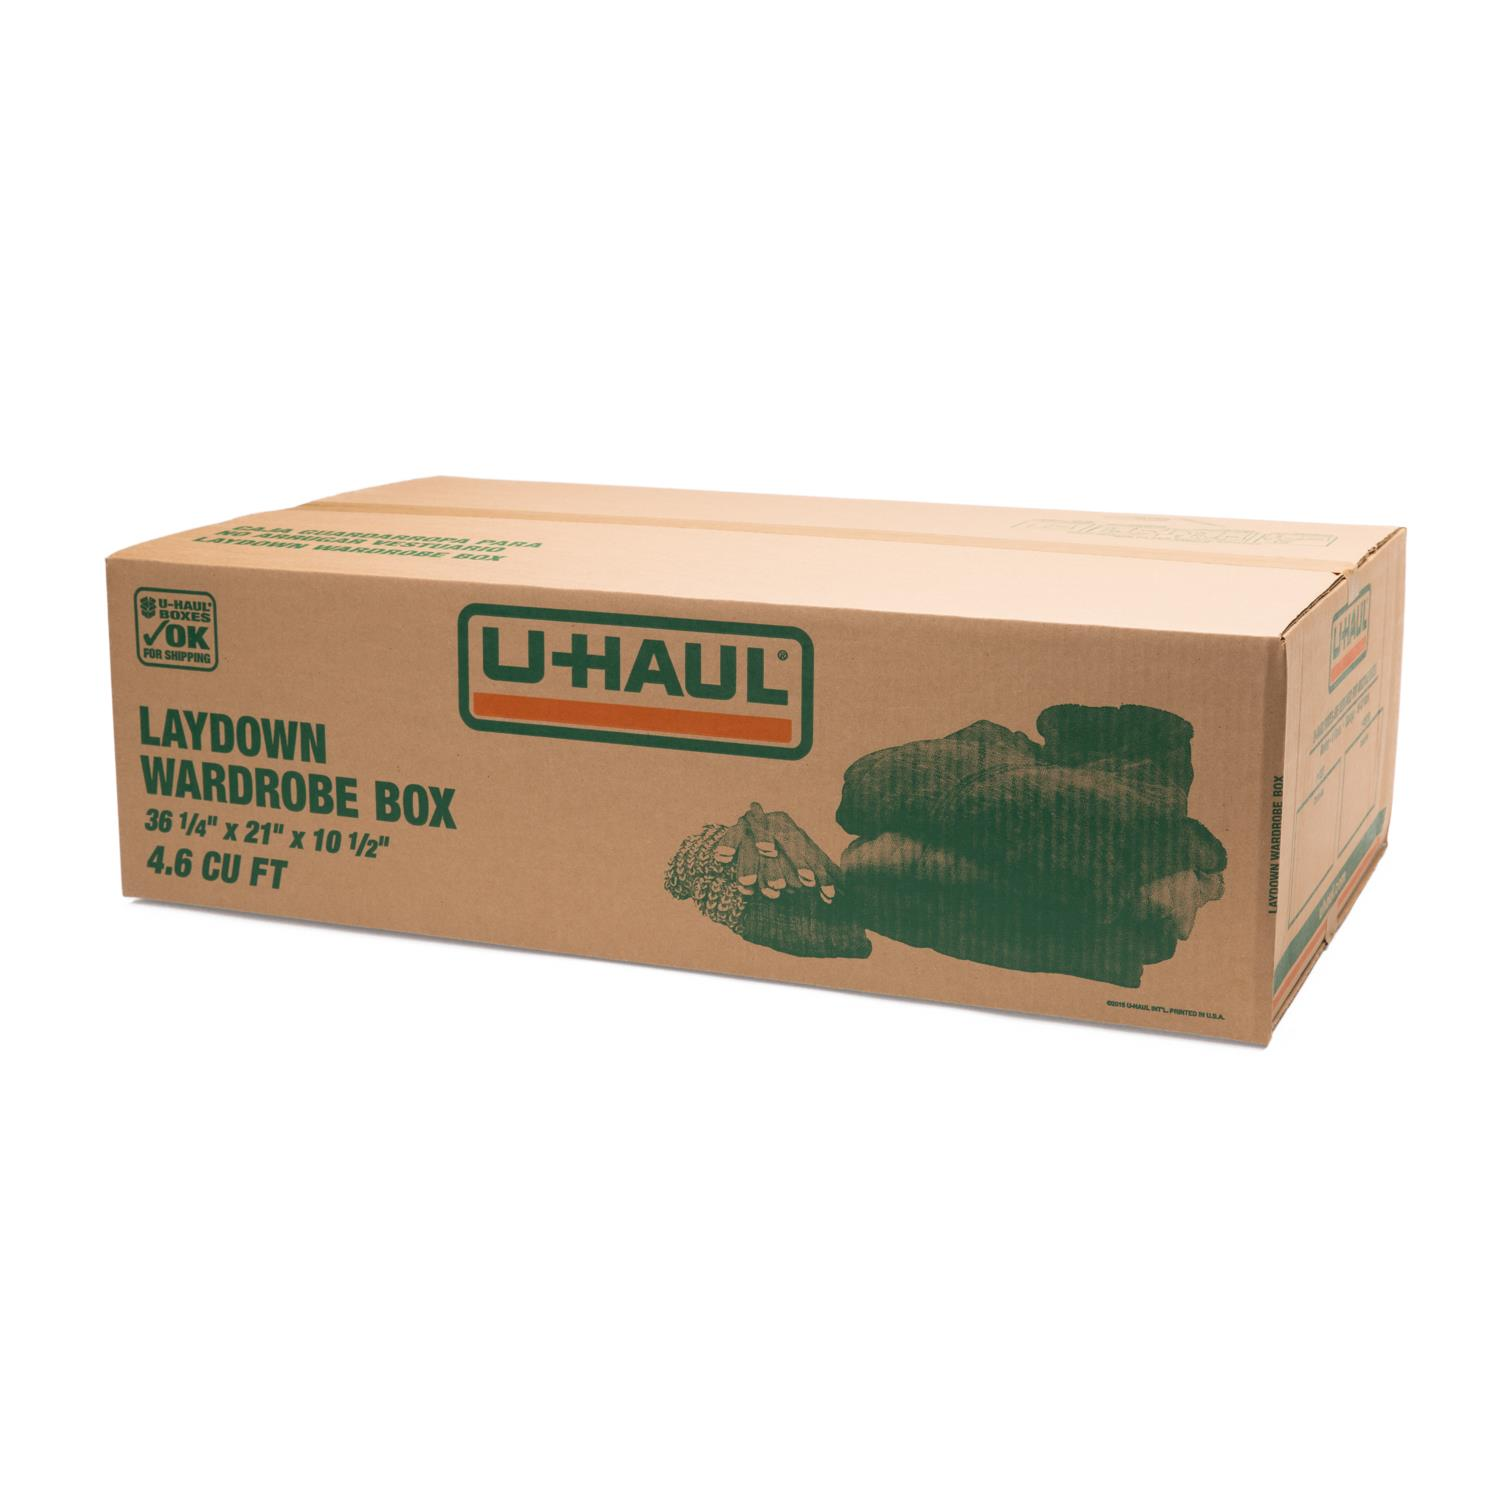 Wardrobe Boxes Uhaul: U-Haul: Laydown Wardrobe Box